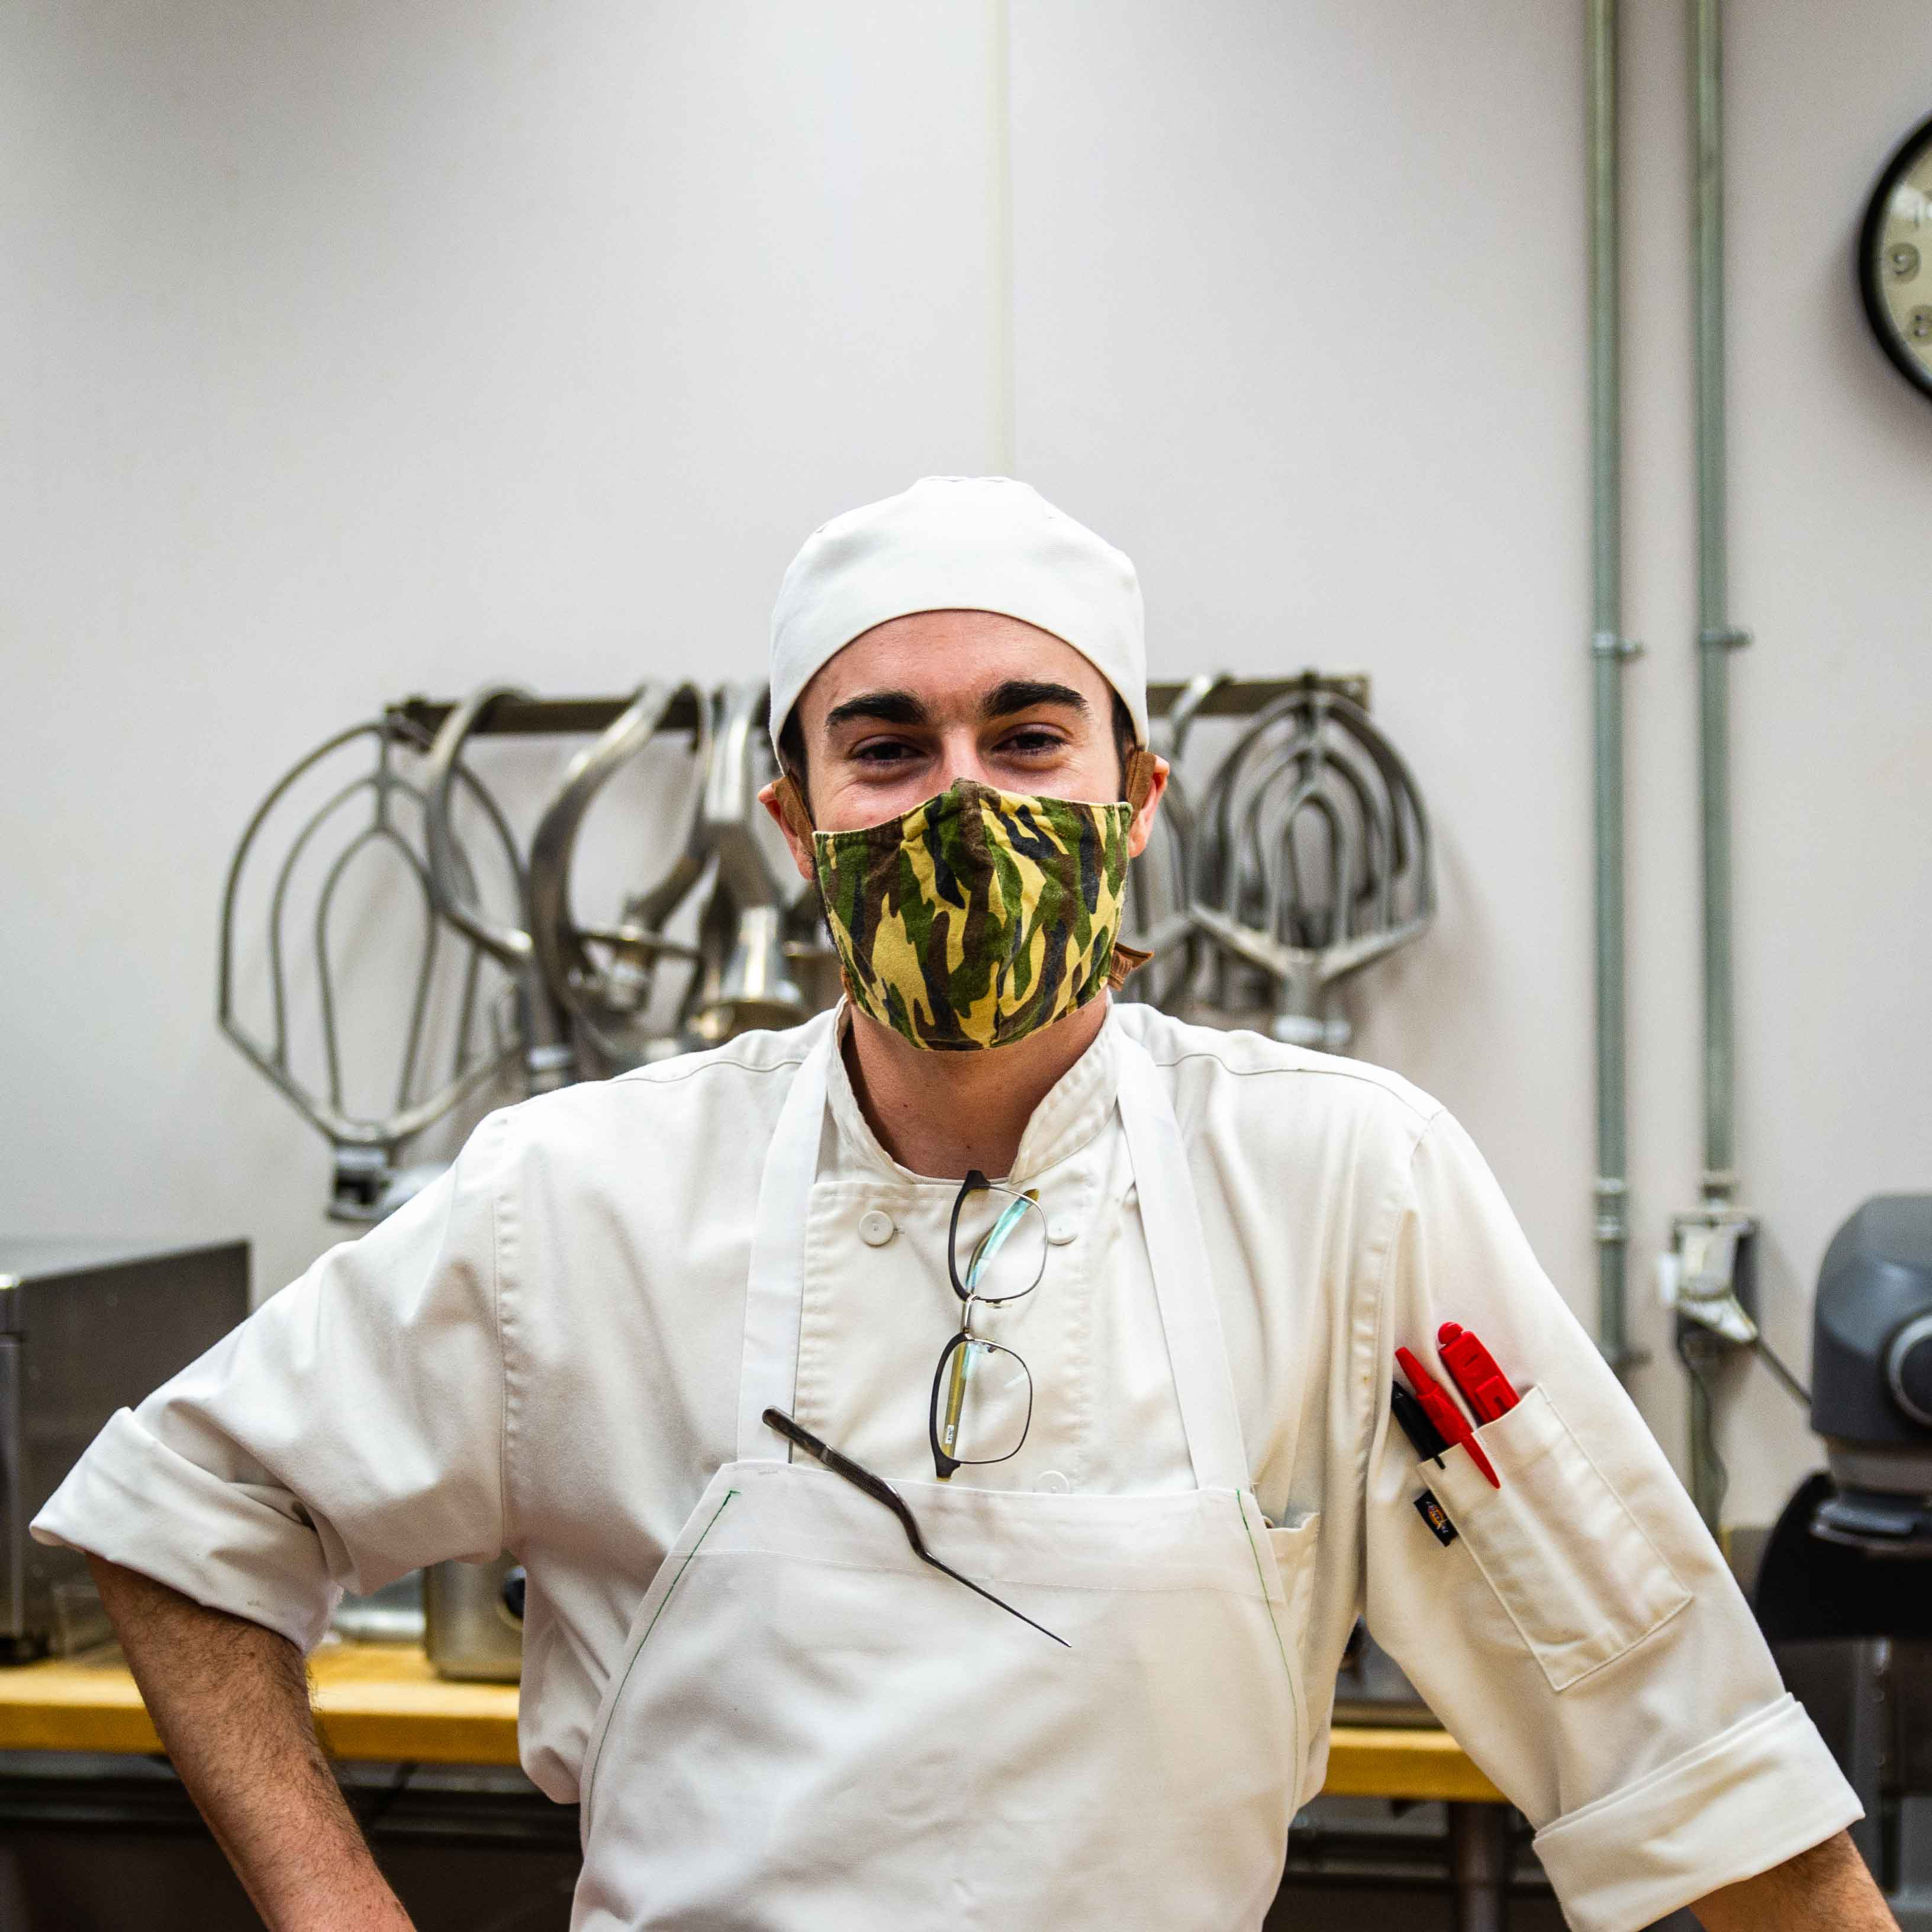 Student in white chef's clothes and masks poses in kitchen